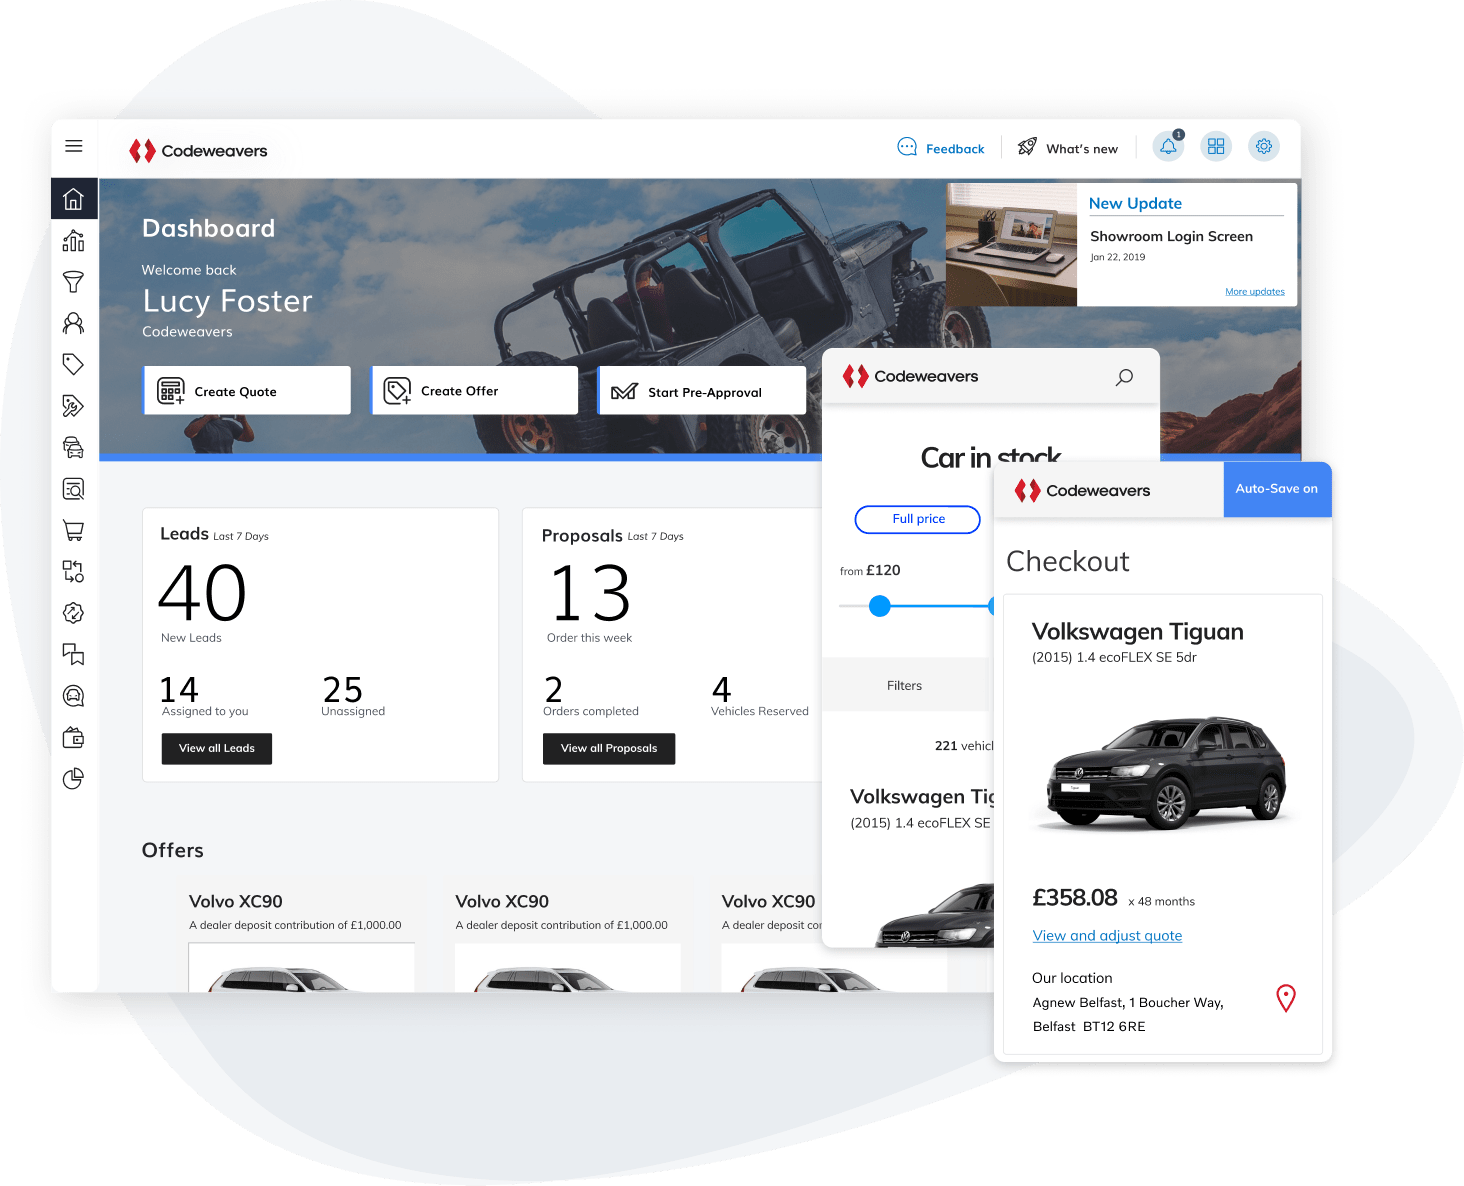 An image of the showroom dashboard with a mobile screen of a car in checkout